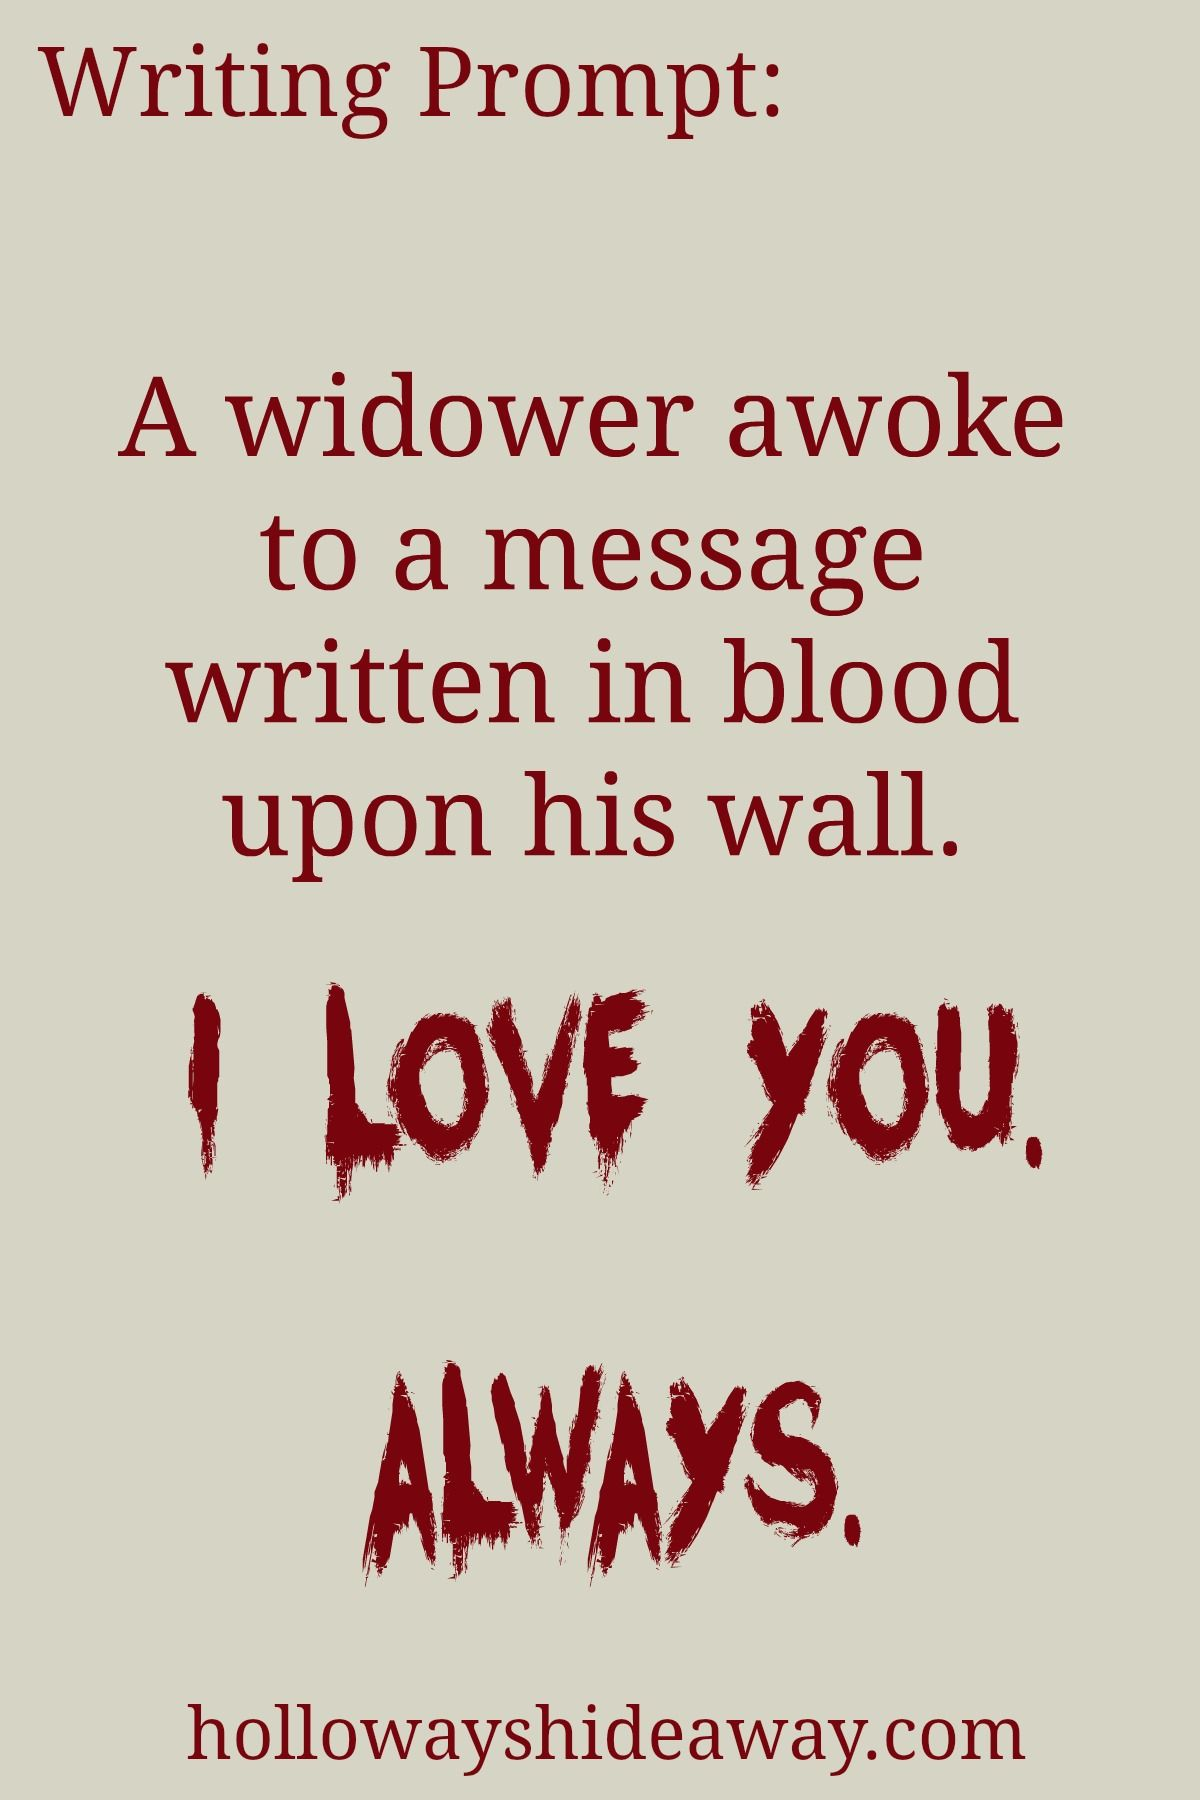 Valentine S Day Writing Prompts Feb A Widower Awoke To